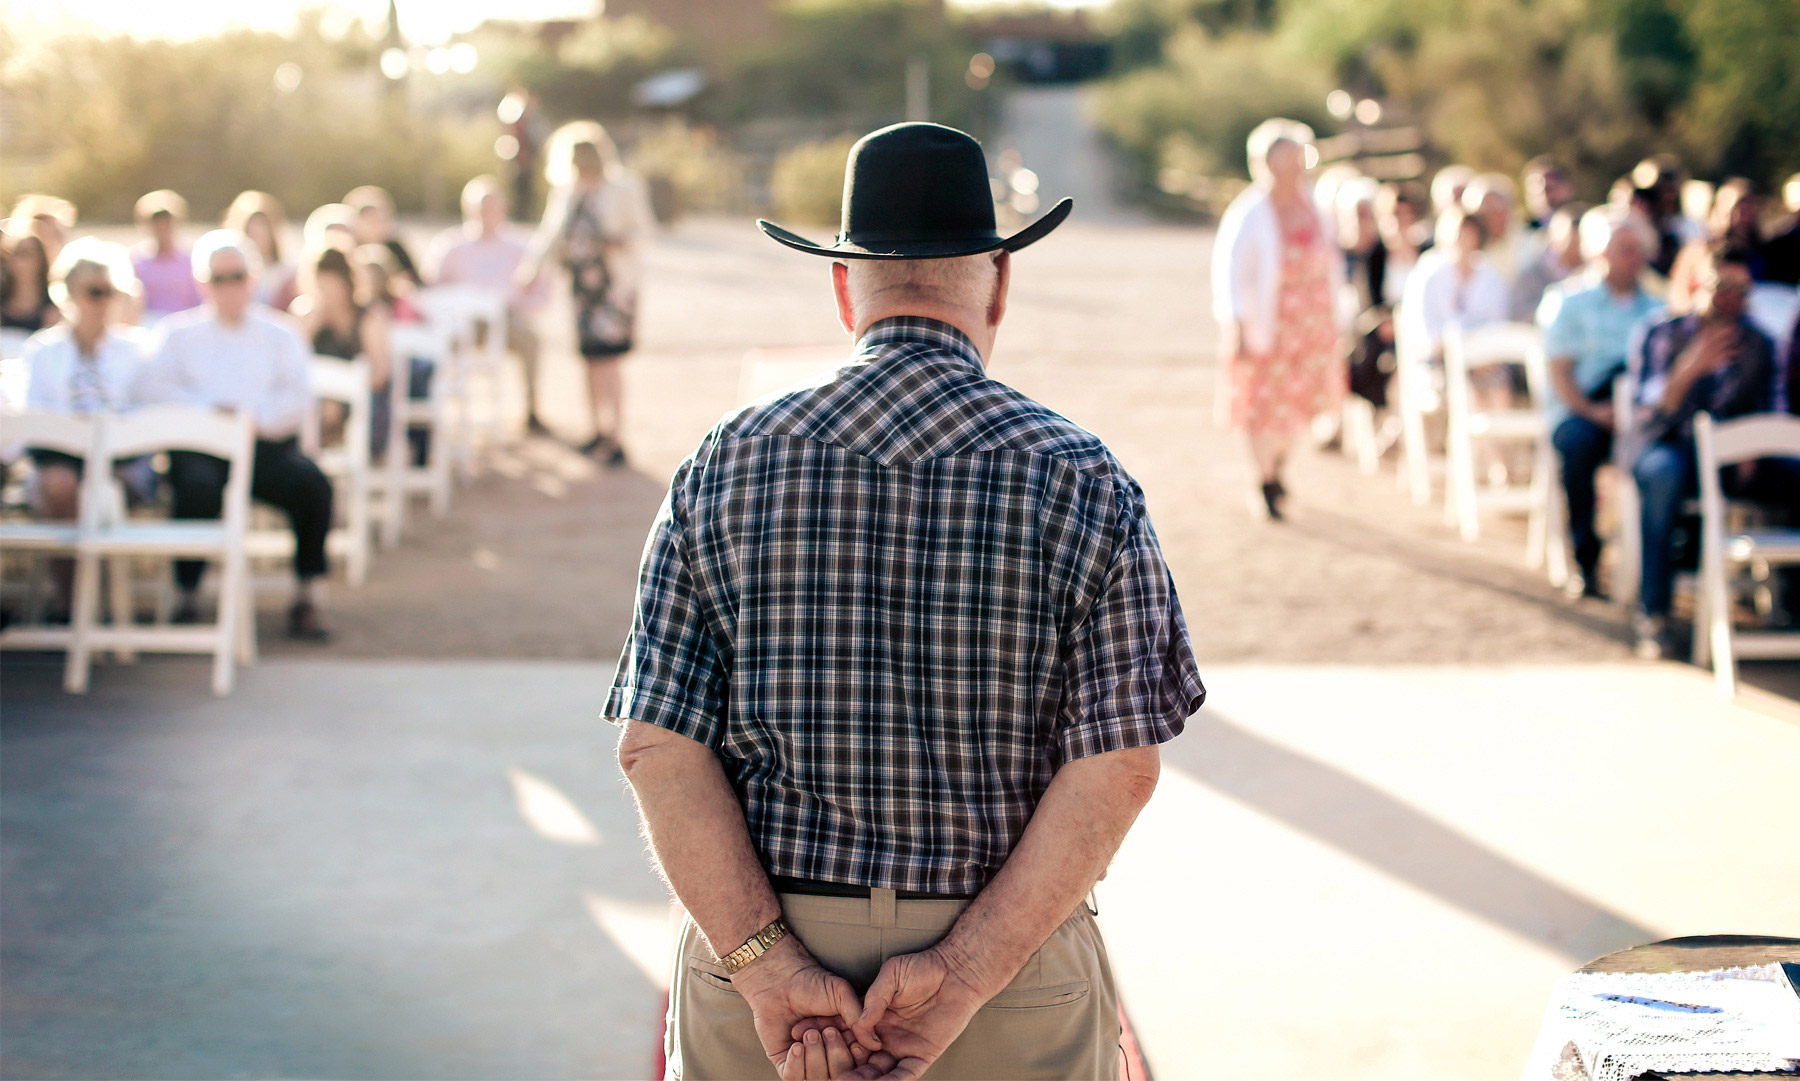 08-Tuscan-Arizona-Wedding-Photography-by-Vick-Photography-Destination-Wedding-Desert-Old-Tucson-Studios-Outdoor-Ceremony-Cowboy-Hat-Elsa-and-Arthur.jpg